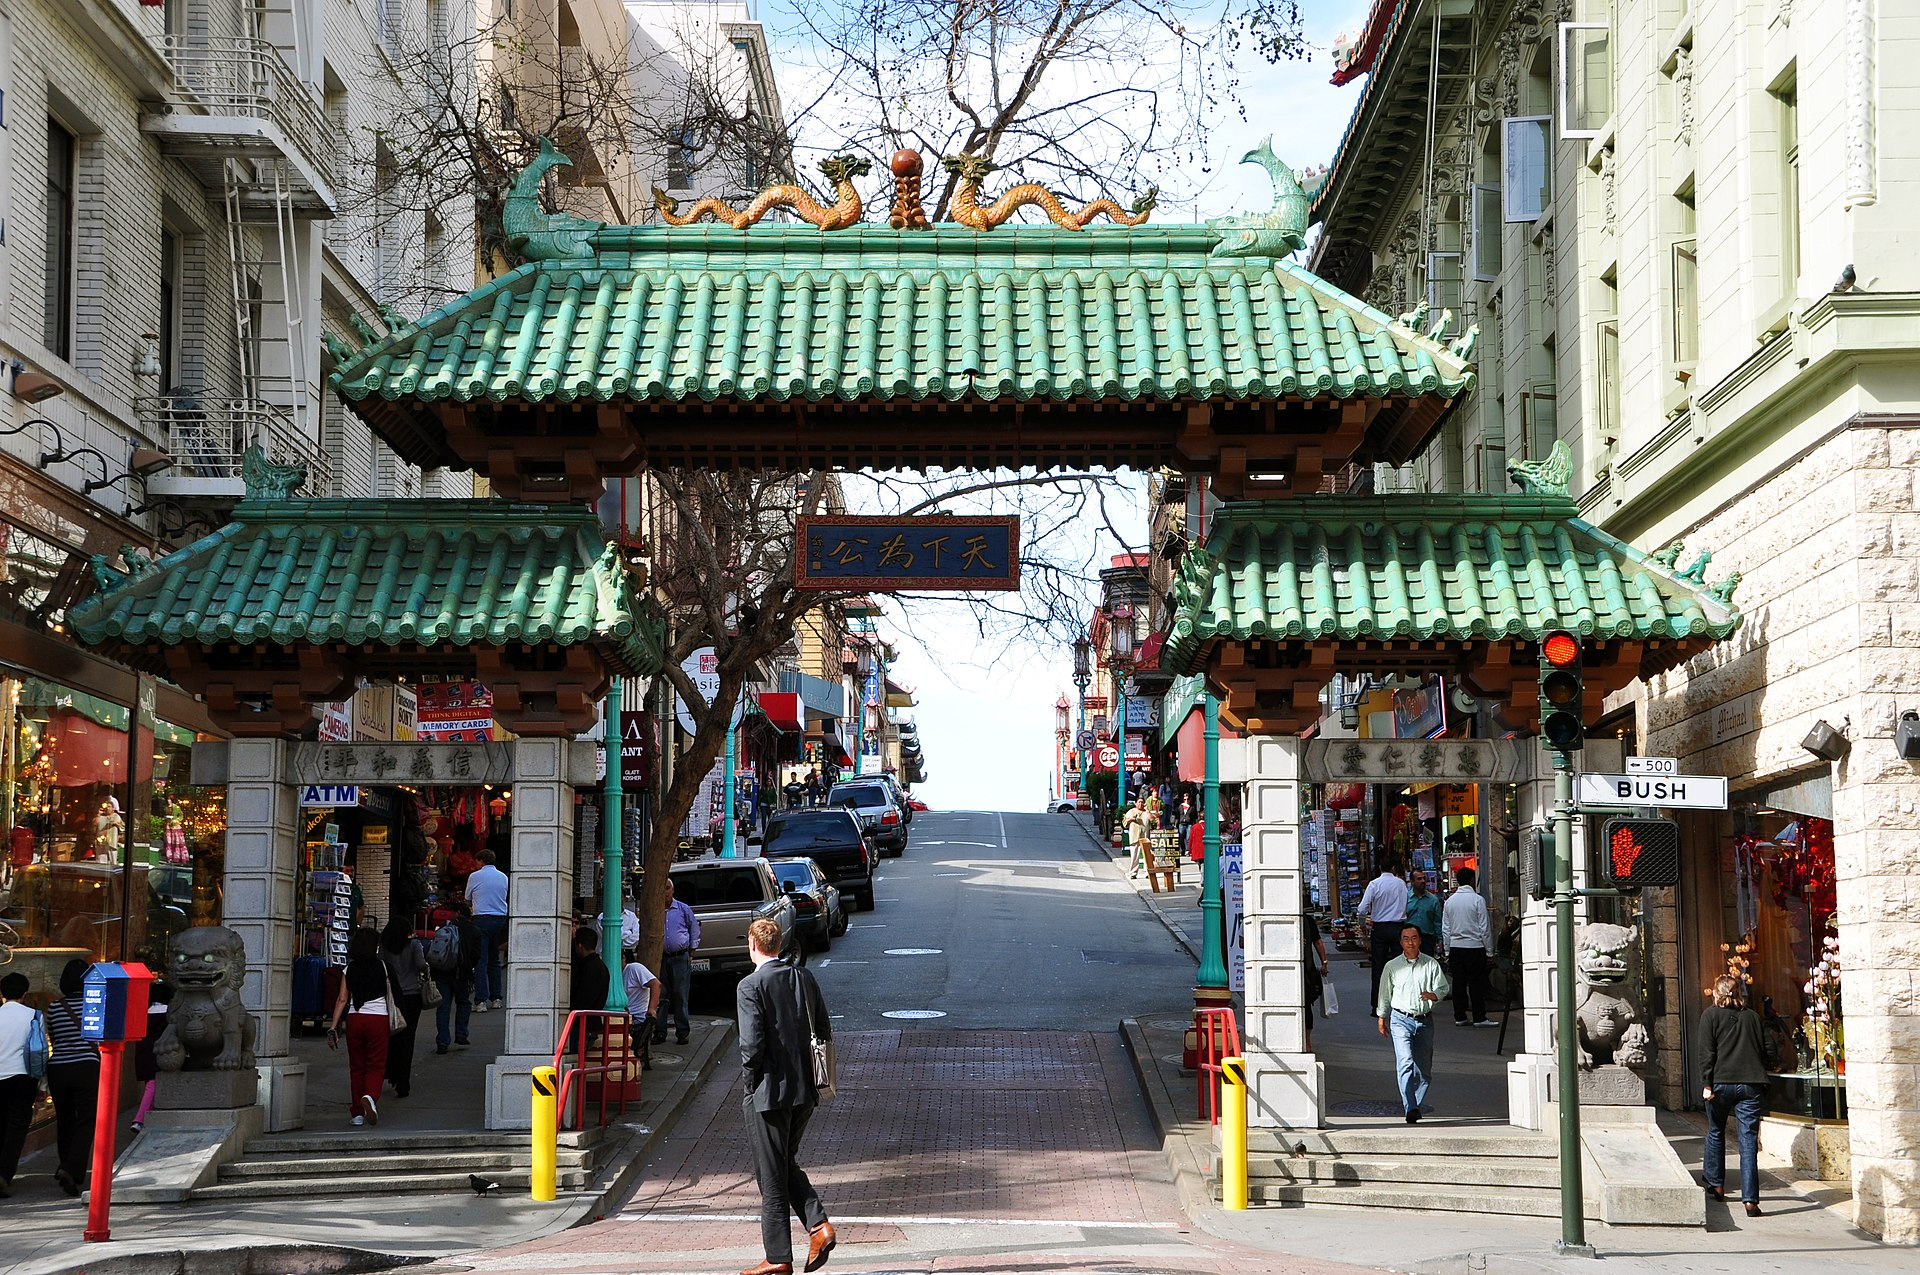 San Francisco's China Town. Source: Wikicommons